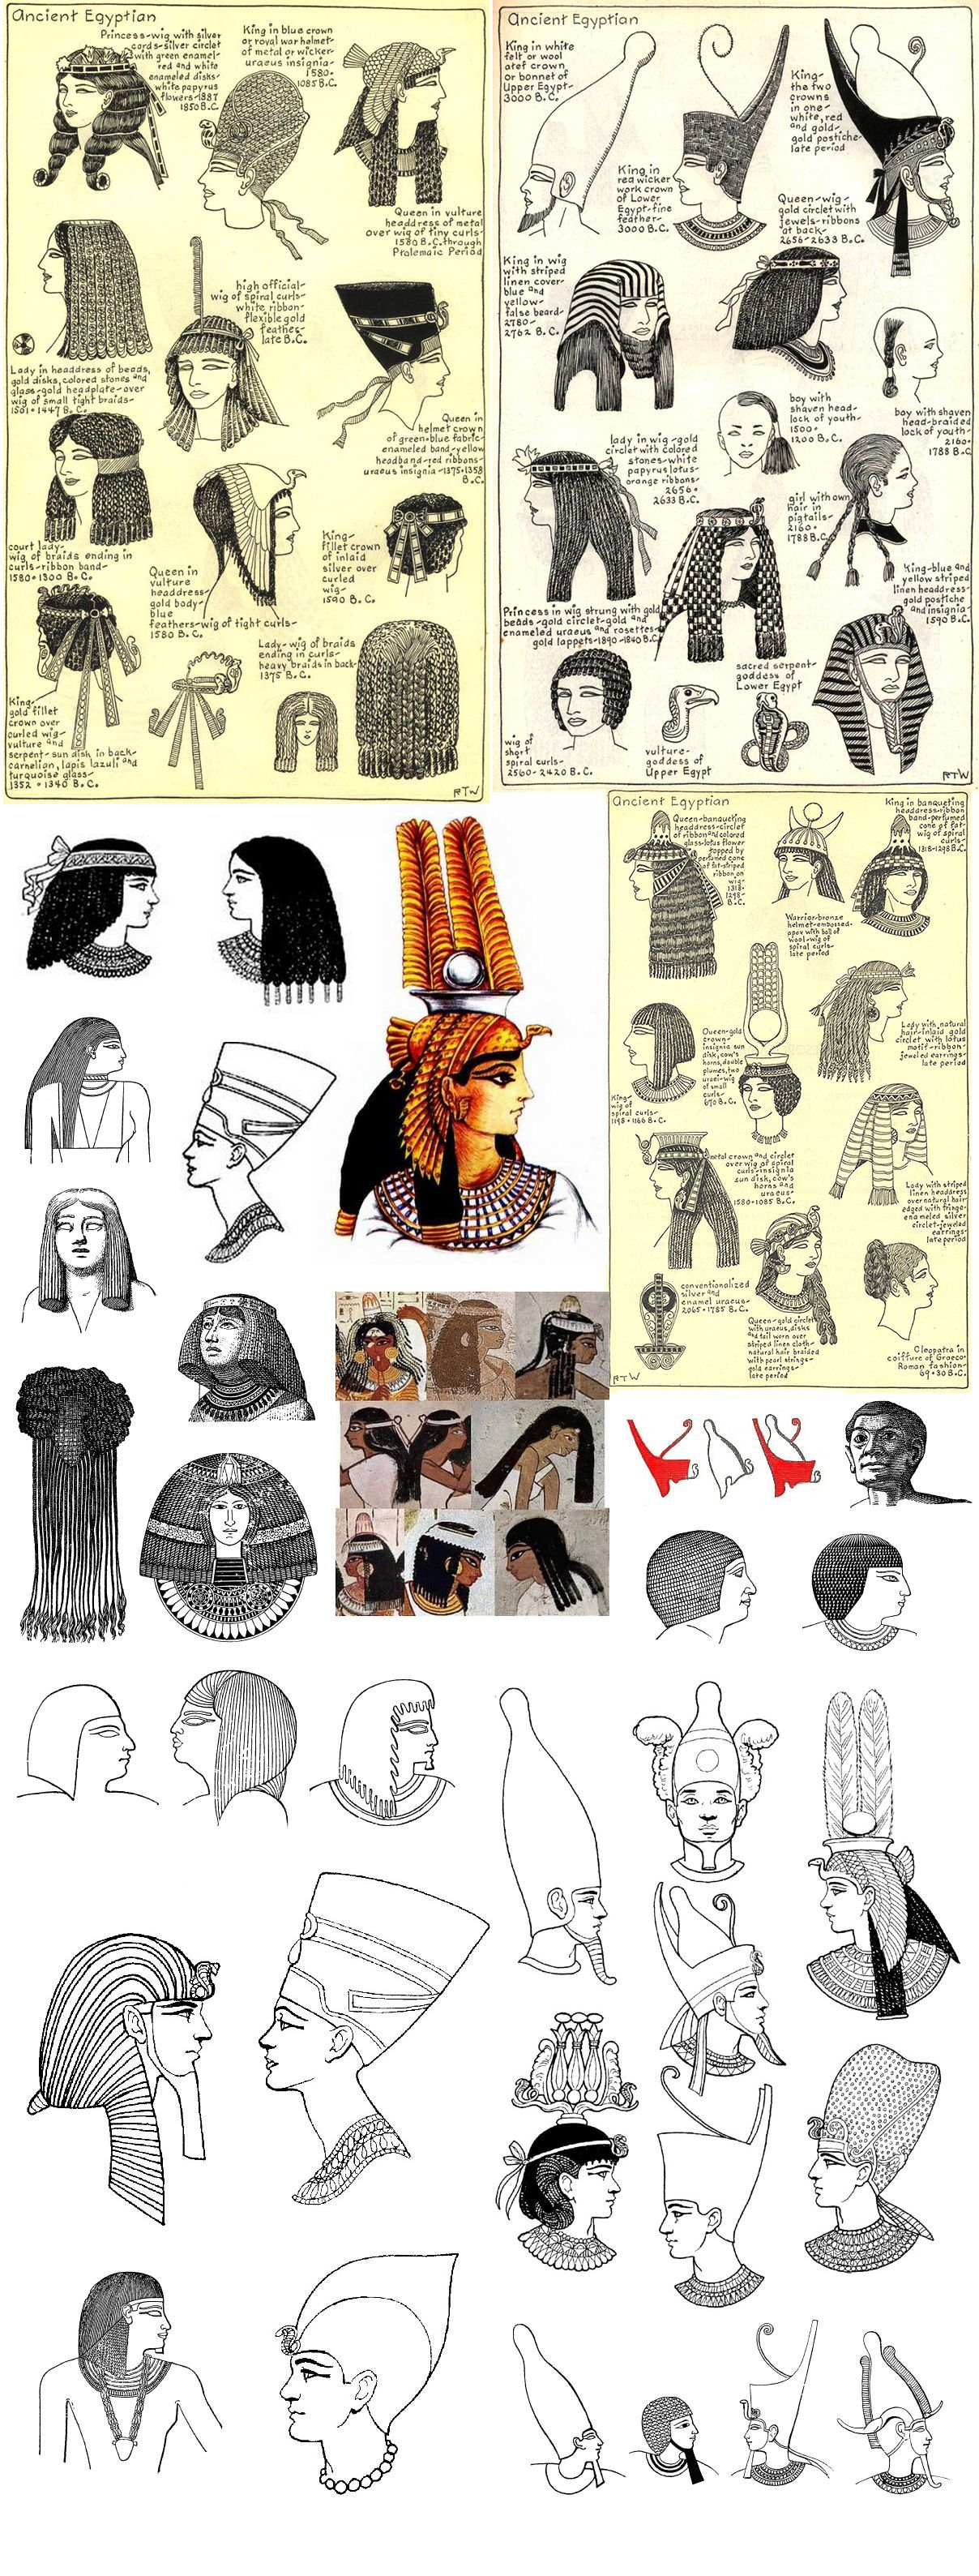 S Media Cache Ak0 Archaeology Ancient Egypt Hairstyles In 2020 Ancient Egypt Art Ancient Egypt Old Egypt